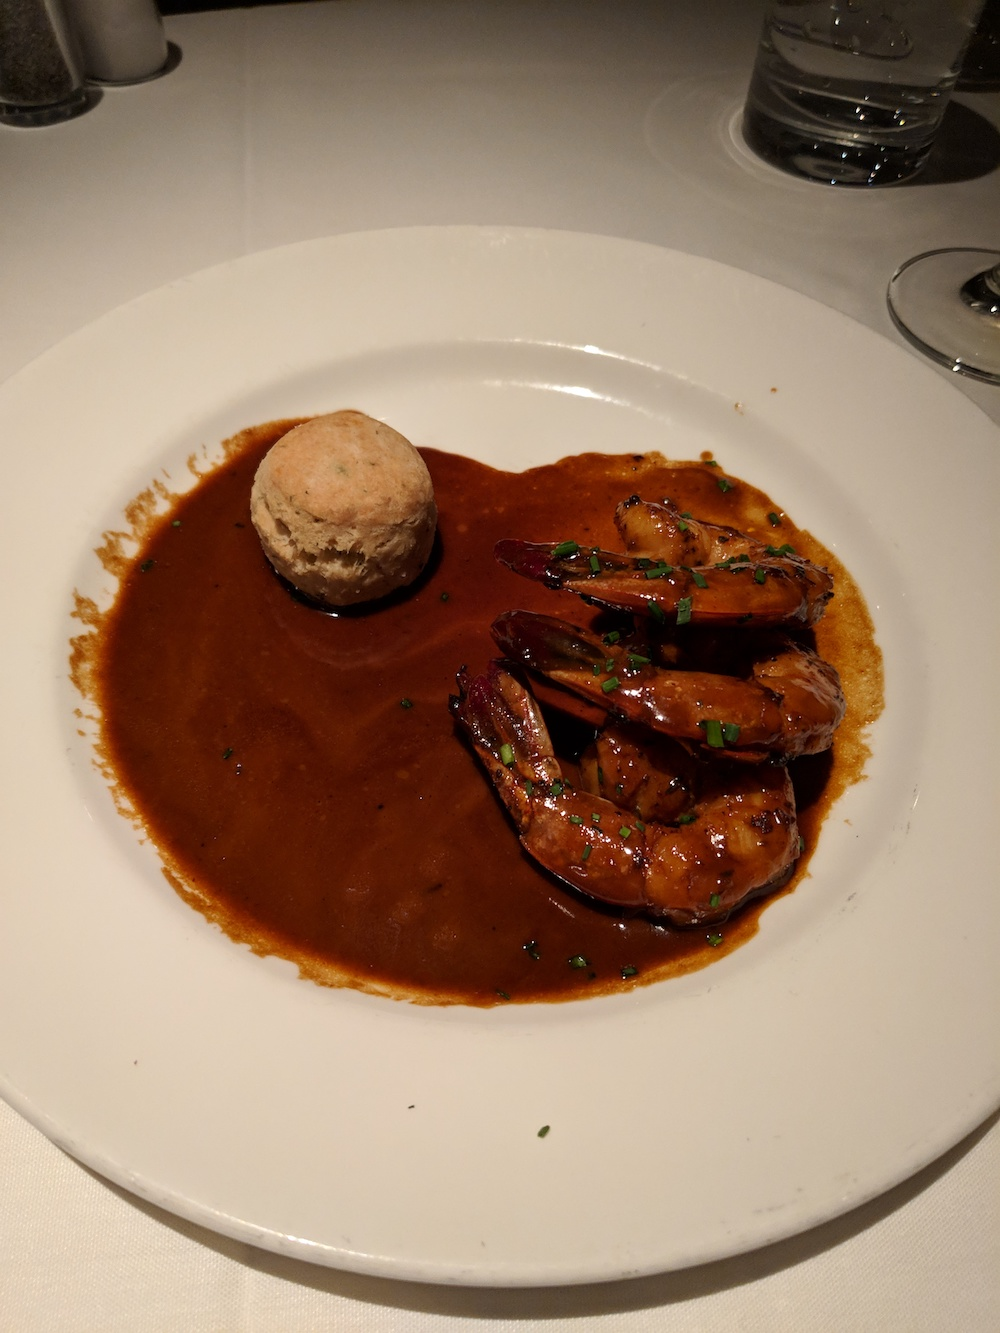 Emeril's New Orleans Barbecue Shrimp